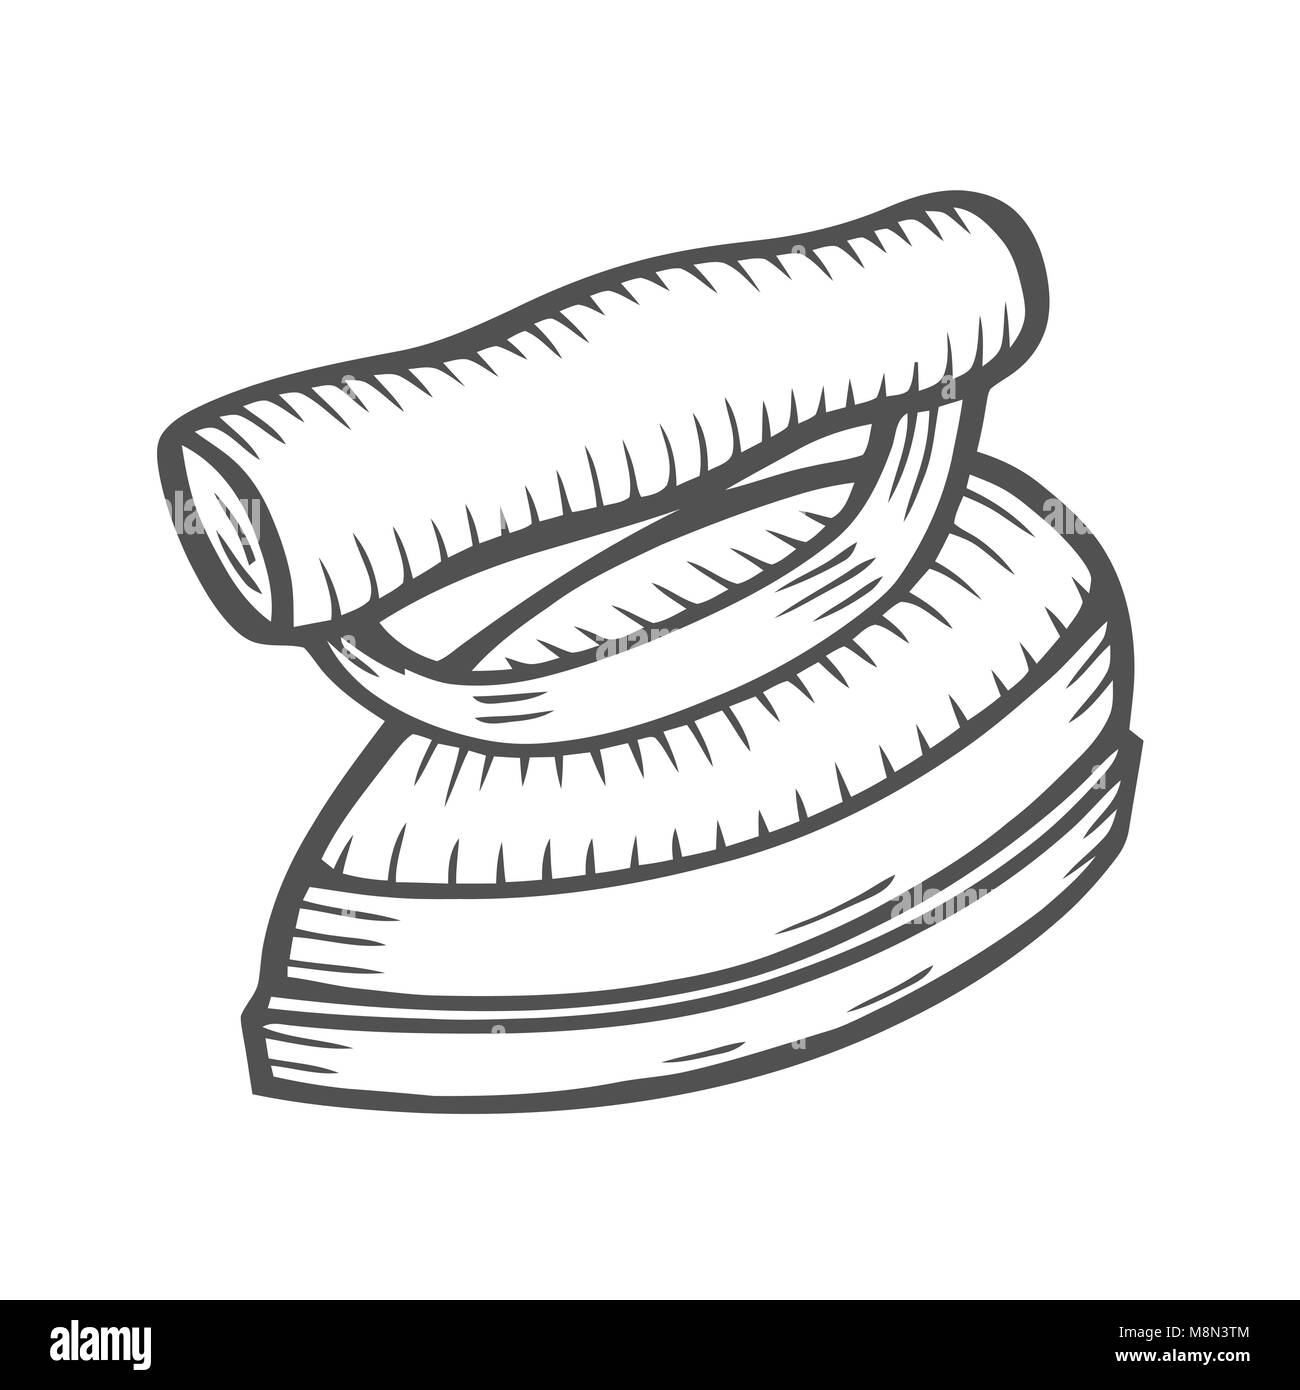 vector hand drawn illustration of box iron isolated on white stock